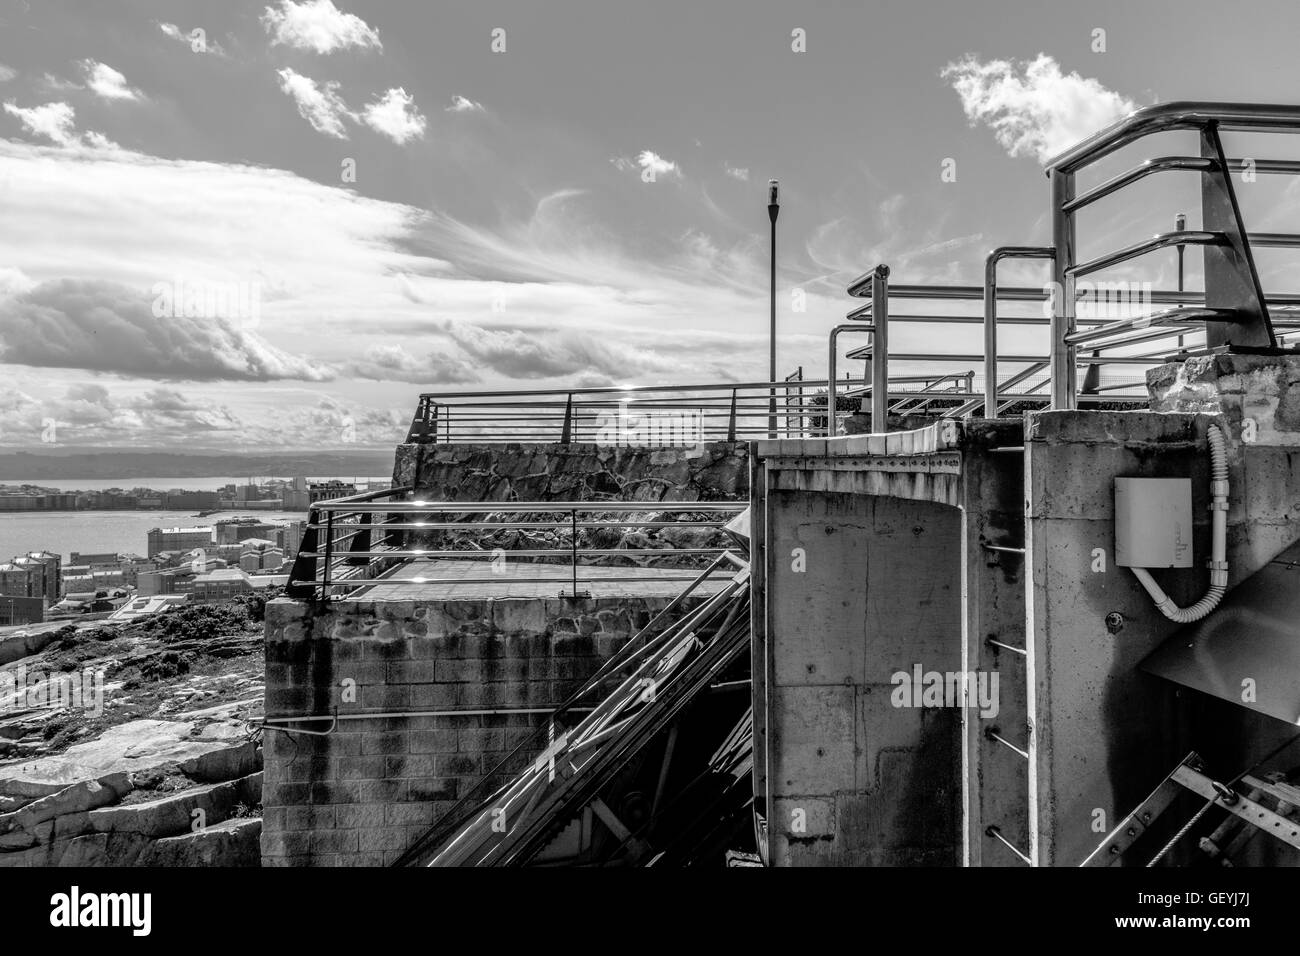 Close-Up Of Industrial Installation Against Cloudy Sky - Stock Image